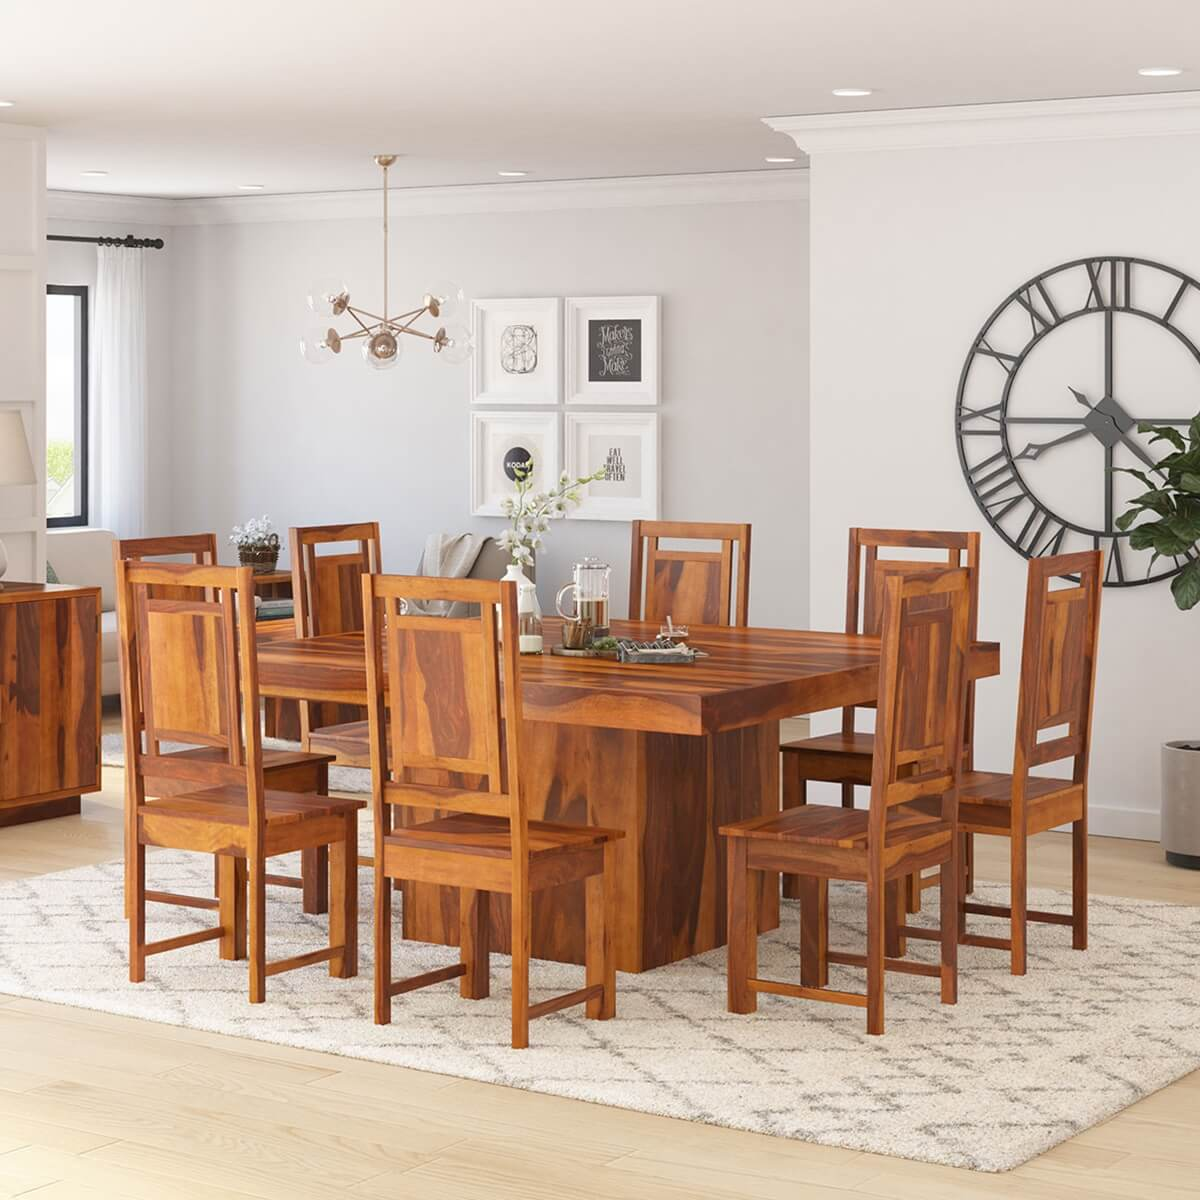 Brocton Solid Wood Square Pedestal Dining Table and Chair Set